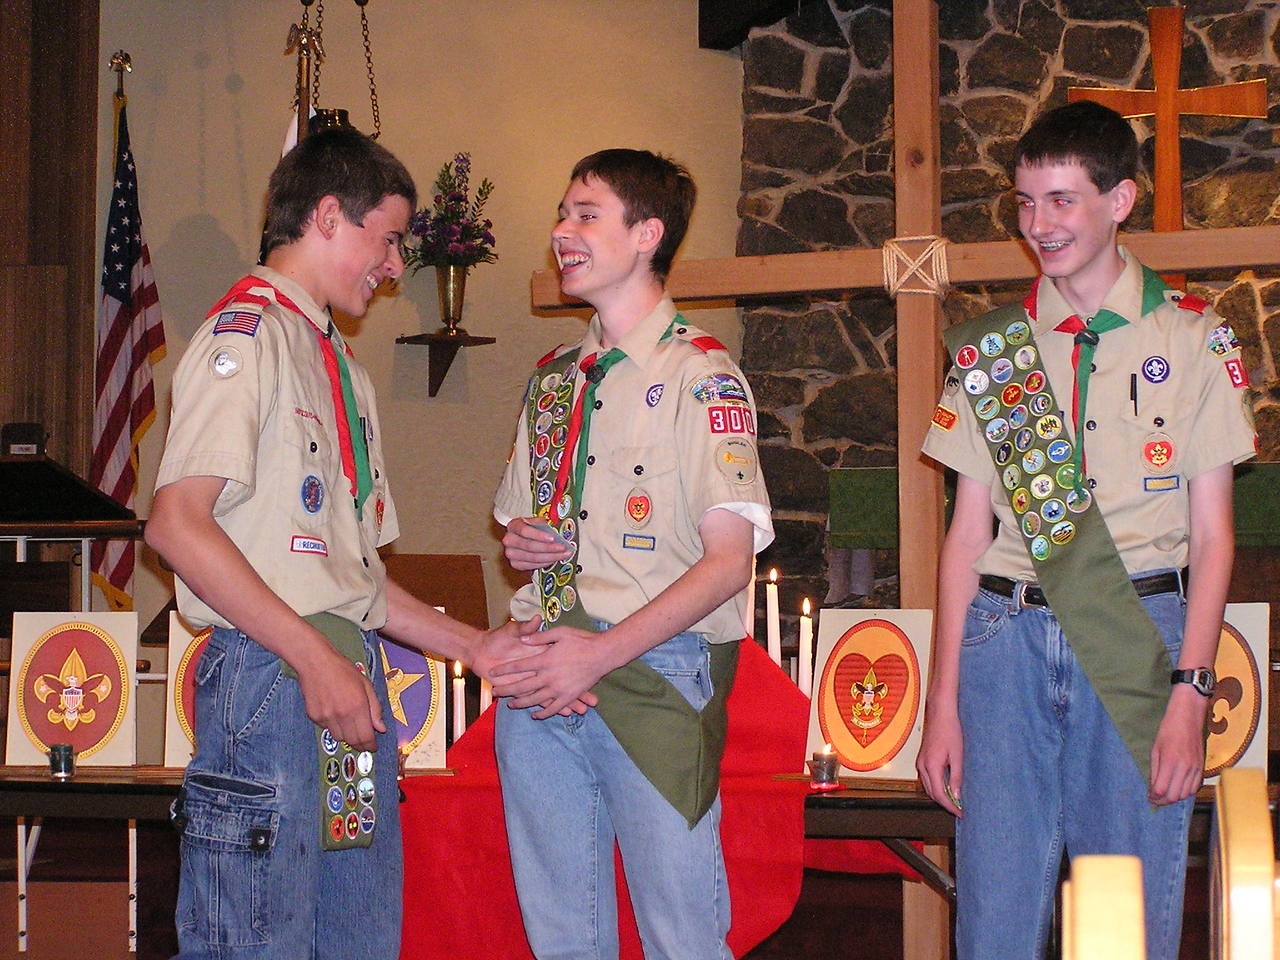 03-09-08 Kevin, Scouts 012